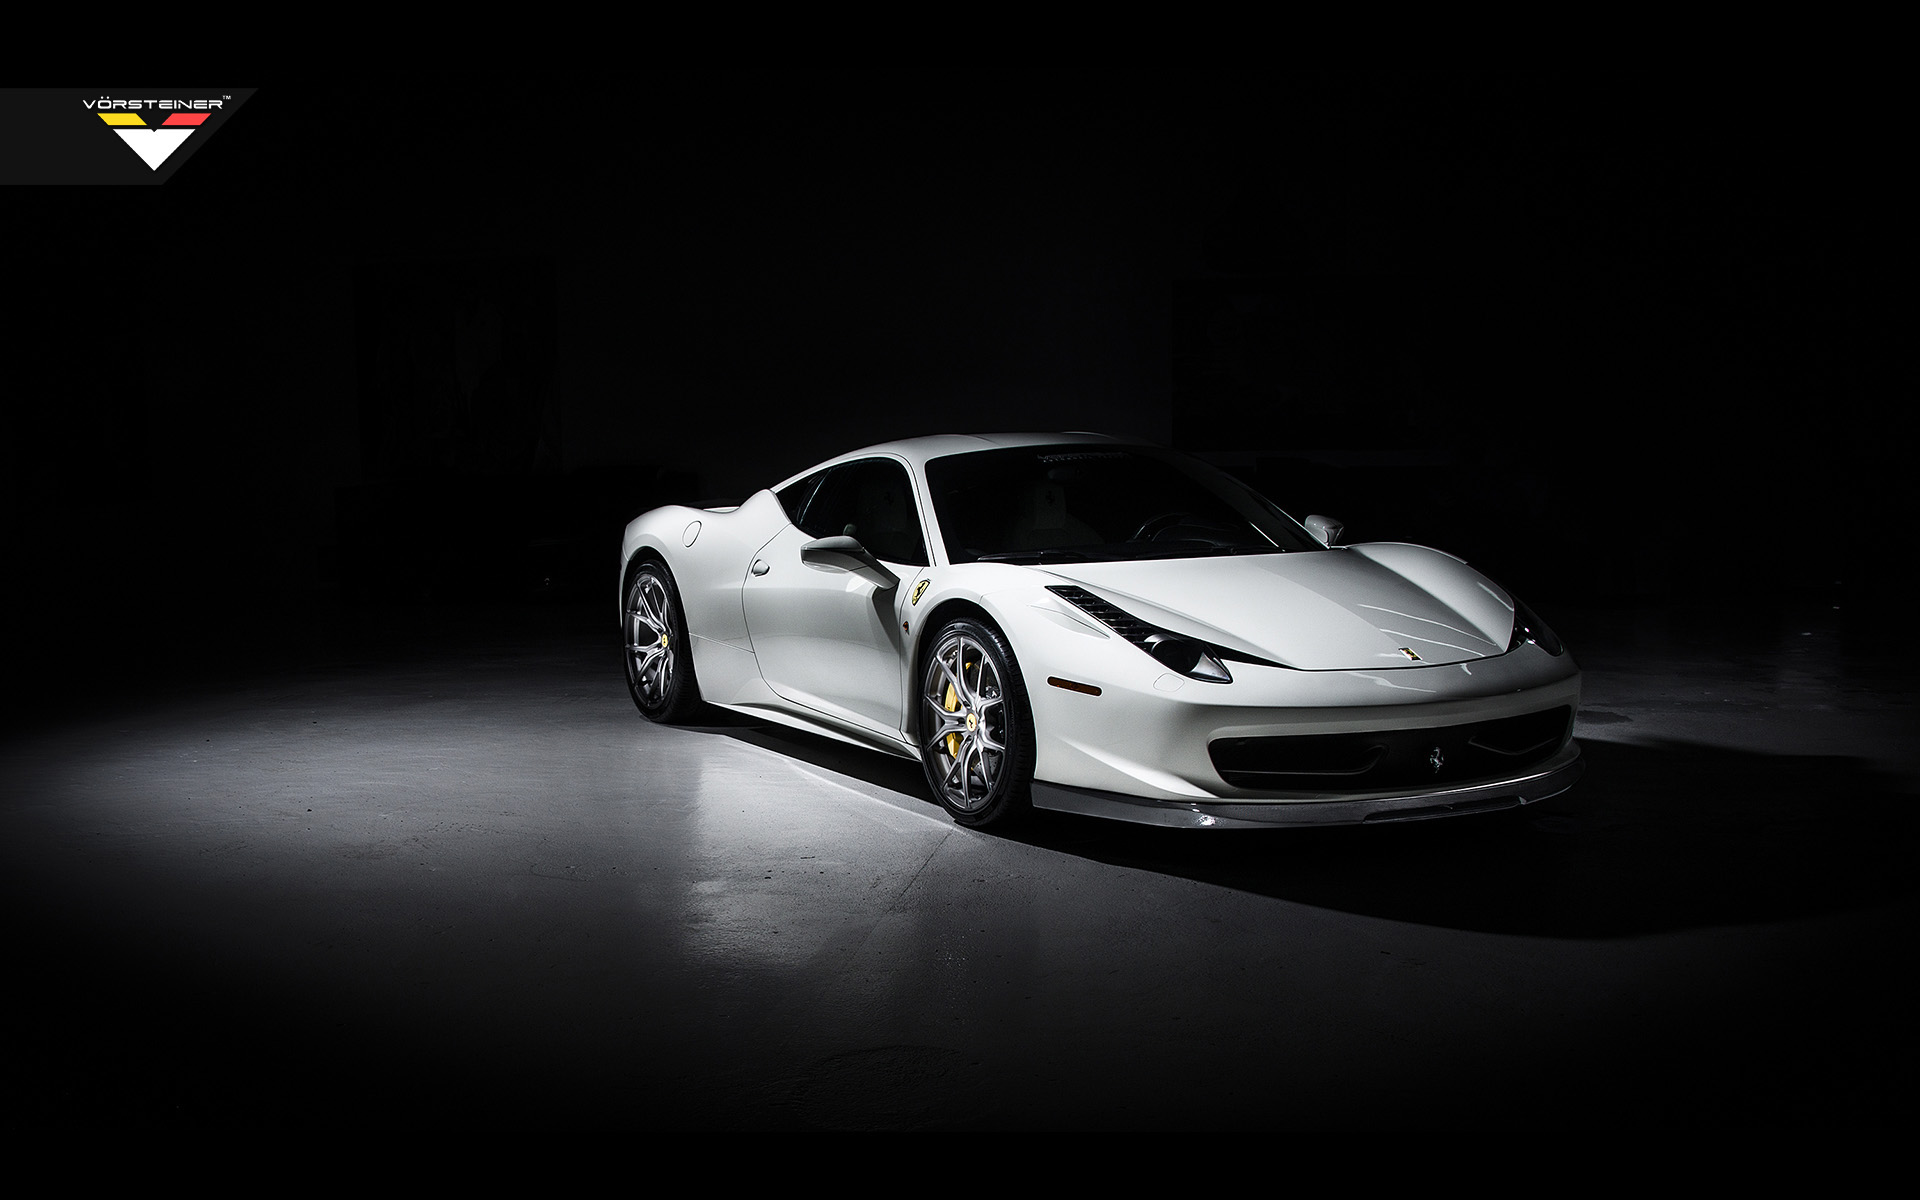 Ferrari 458 Italia White Wide - HD Desktop Wallpapers